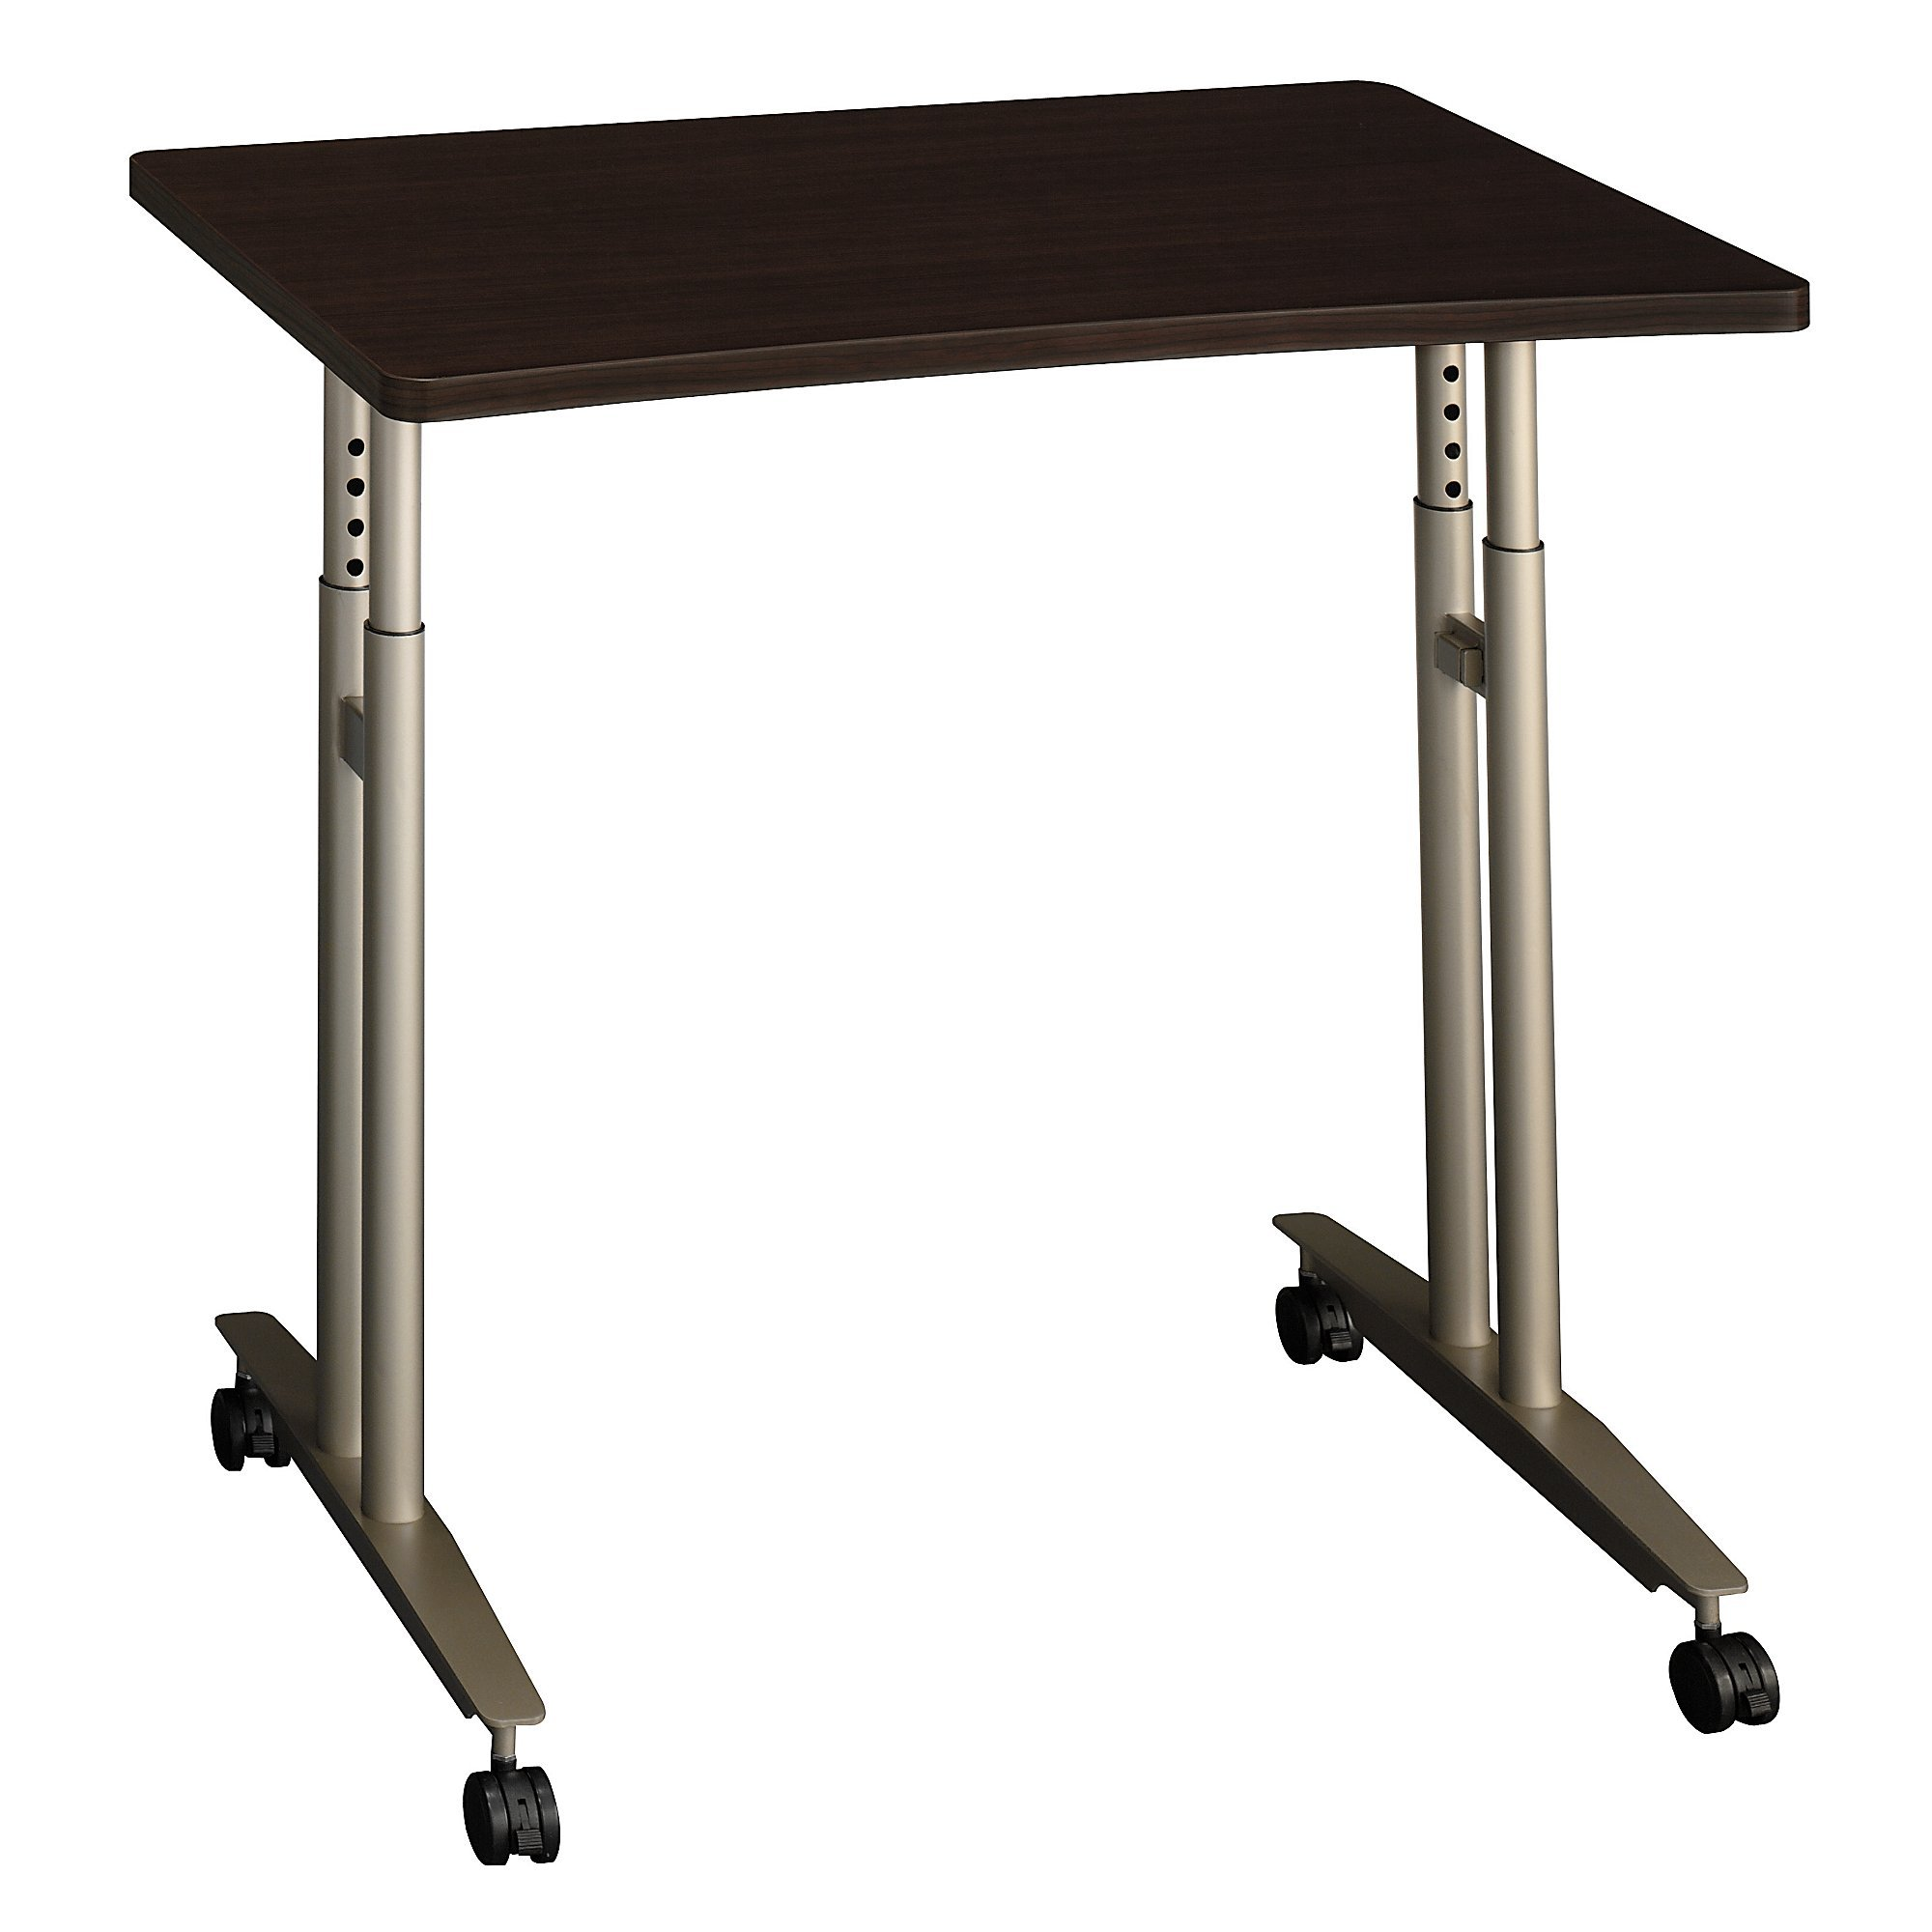 Bush Business Furniture WC12982 Series C 36W Adjustable Height Mobile Table, Mocha Cherry